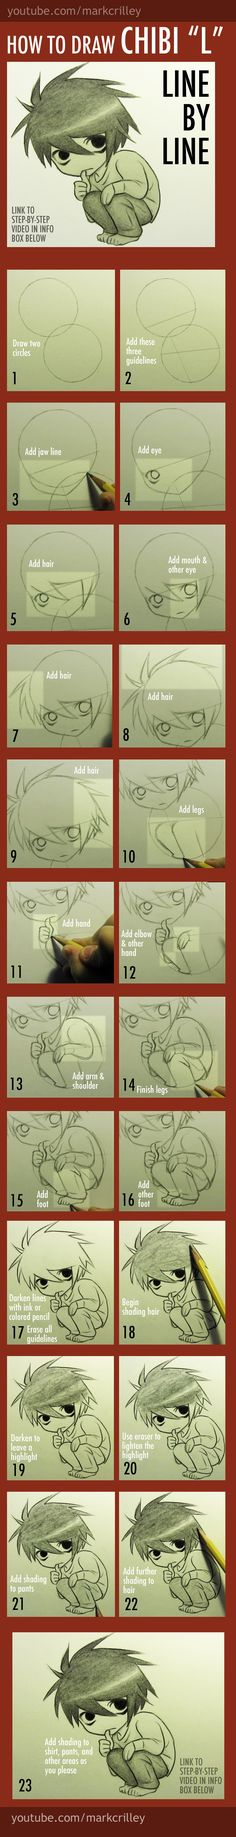 How to Draw Chibi L from Death Note by markcrilley.deviantart.com on @deviantART